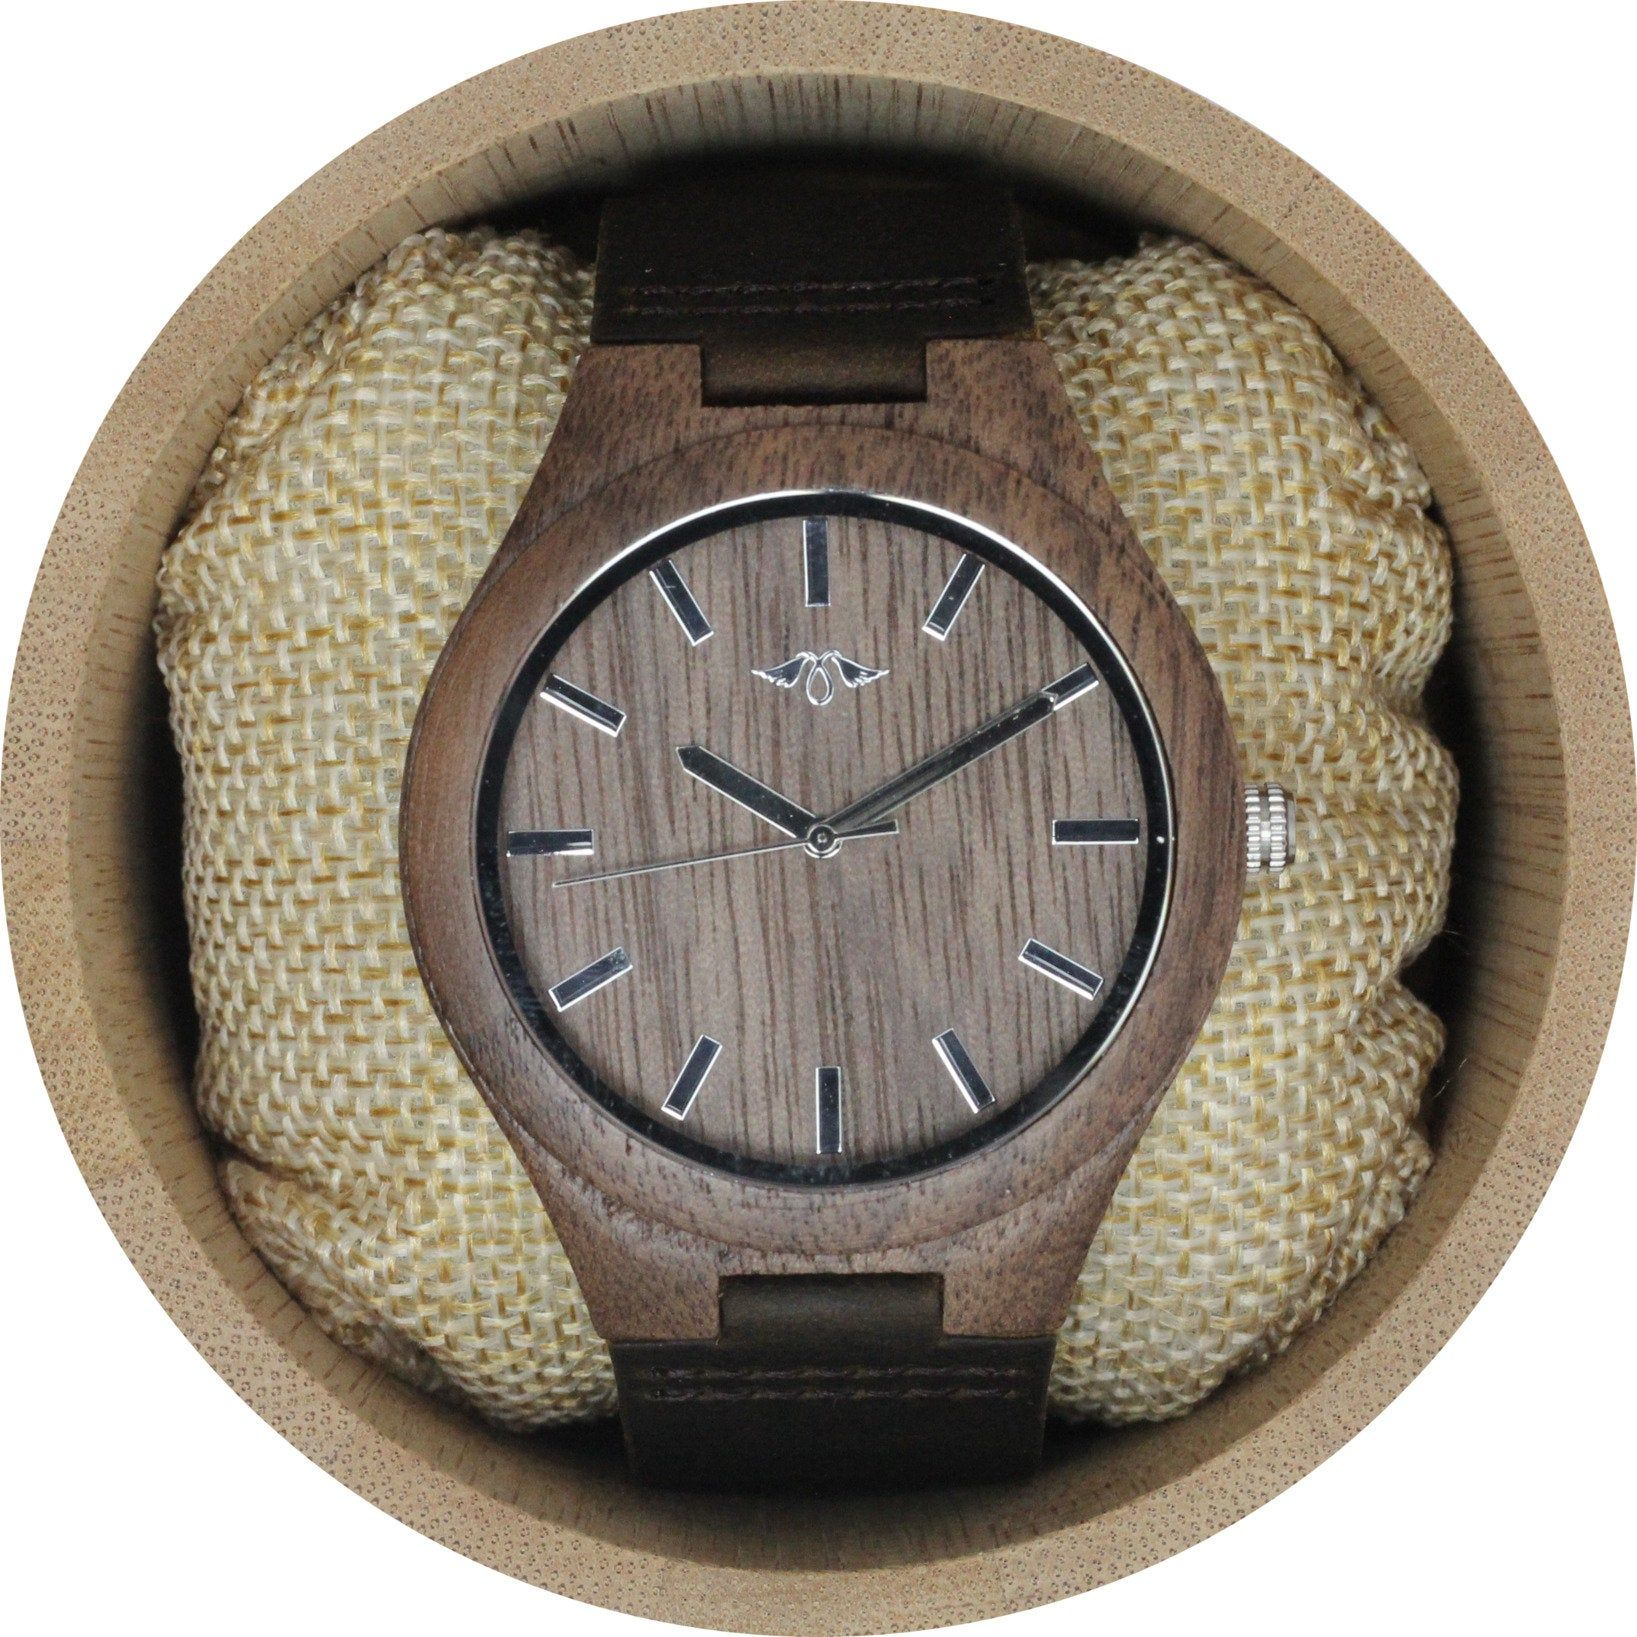 Engraved Walnut Wood Men's Watch With Brown Leather Strap,Leather Wood Watch,Men Watch,Engrave Watch,Personalized Watch,Fiance gift(W101)